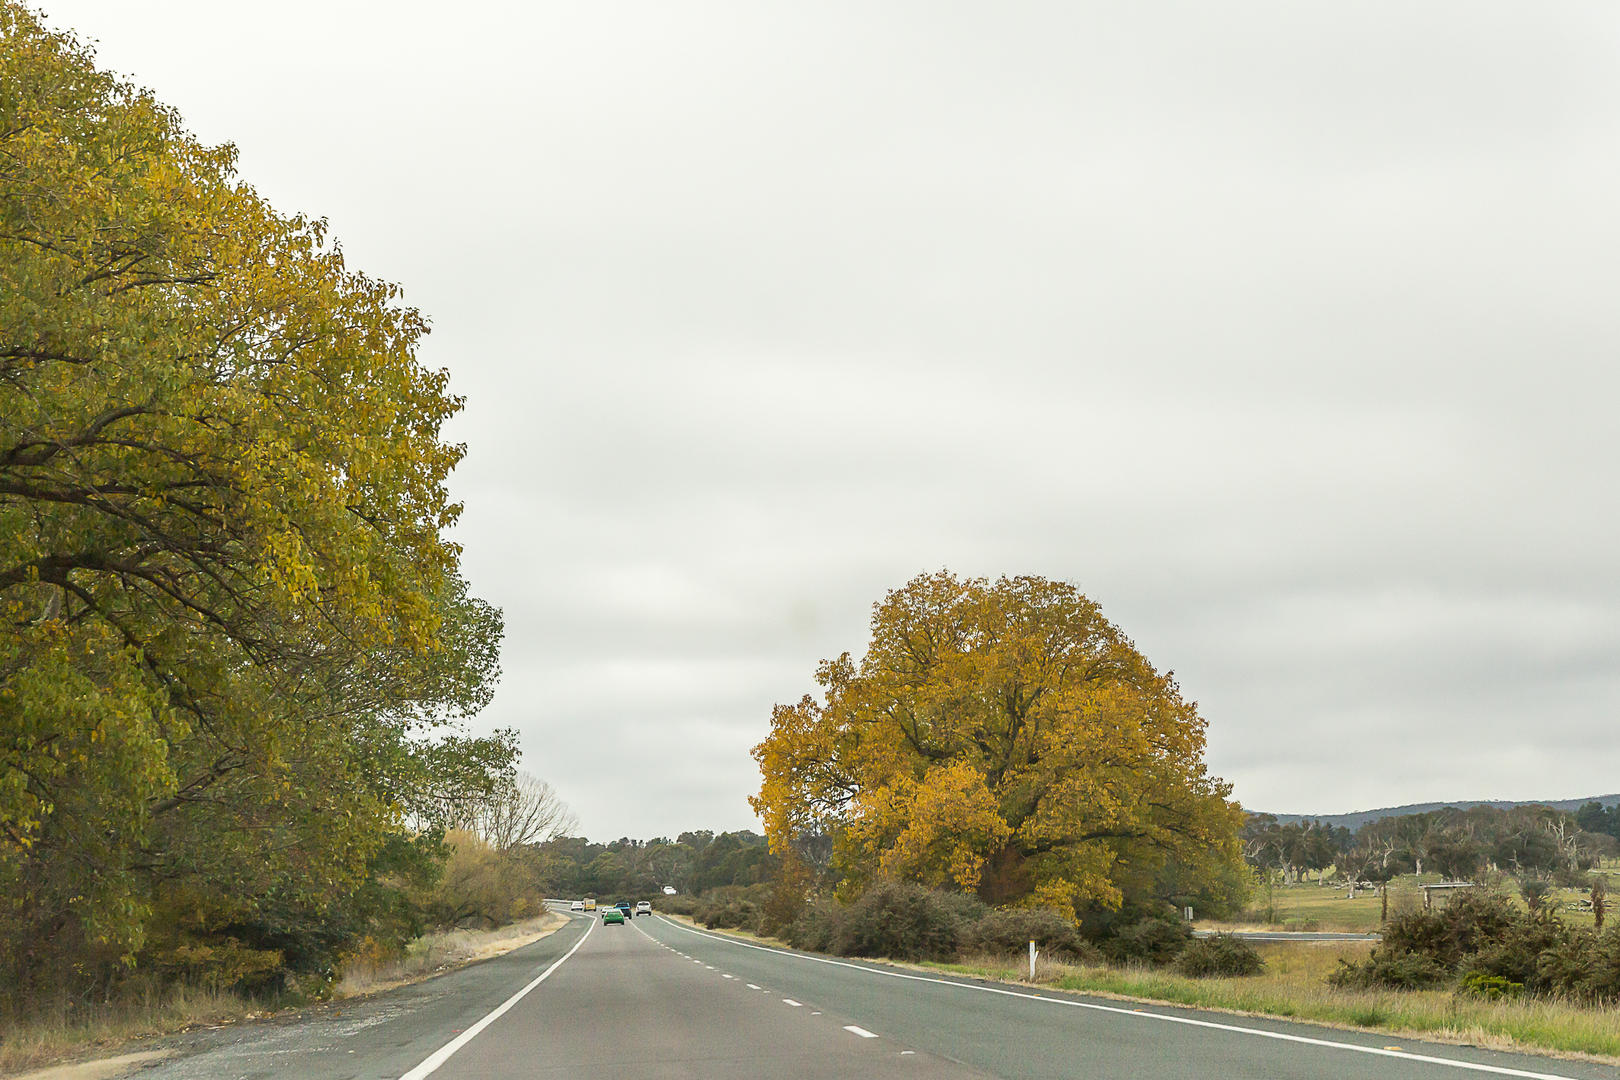 The Highway 27